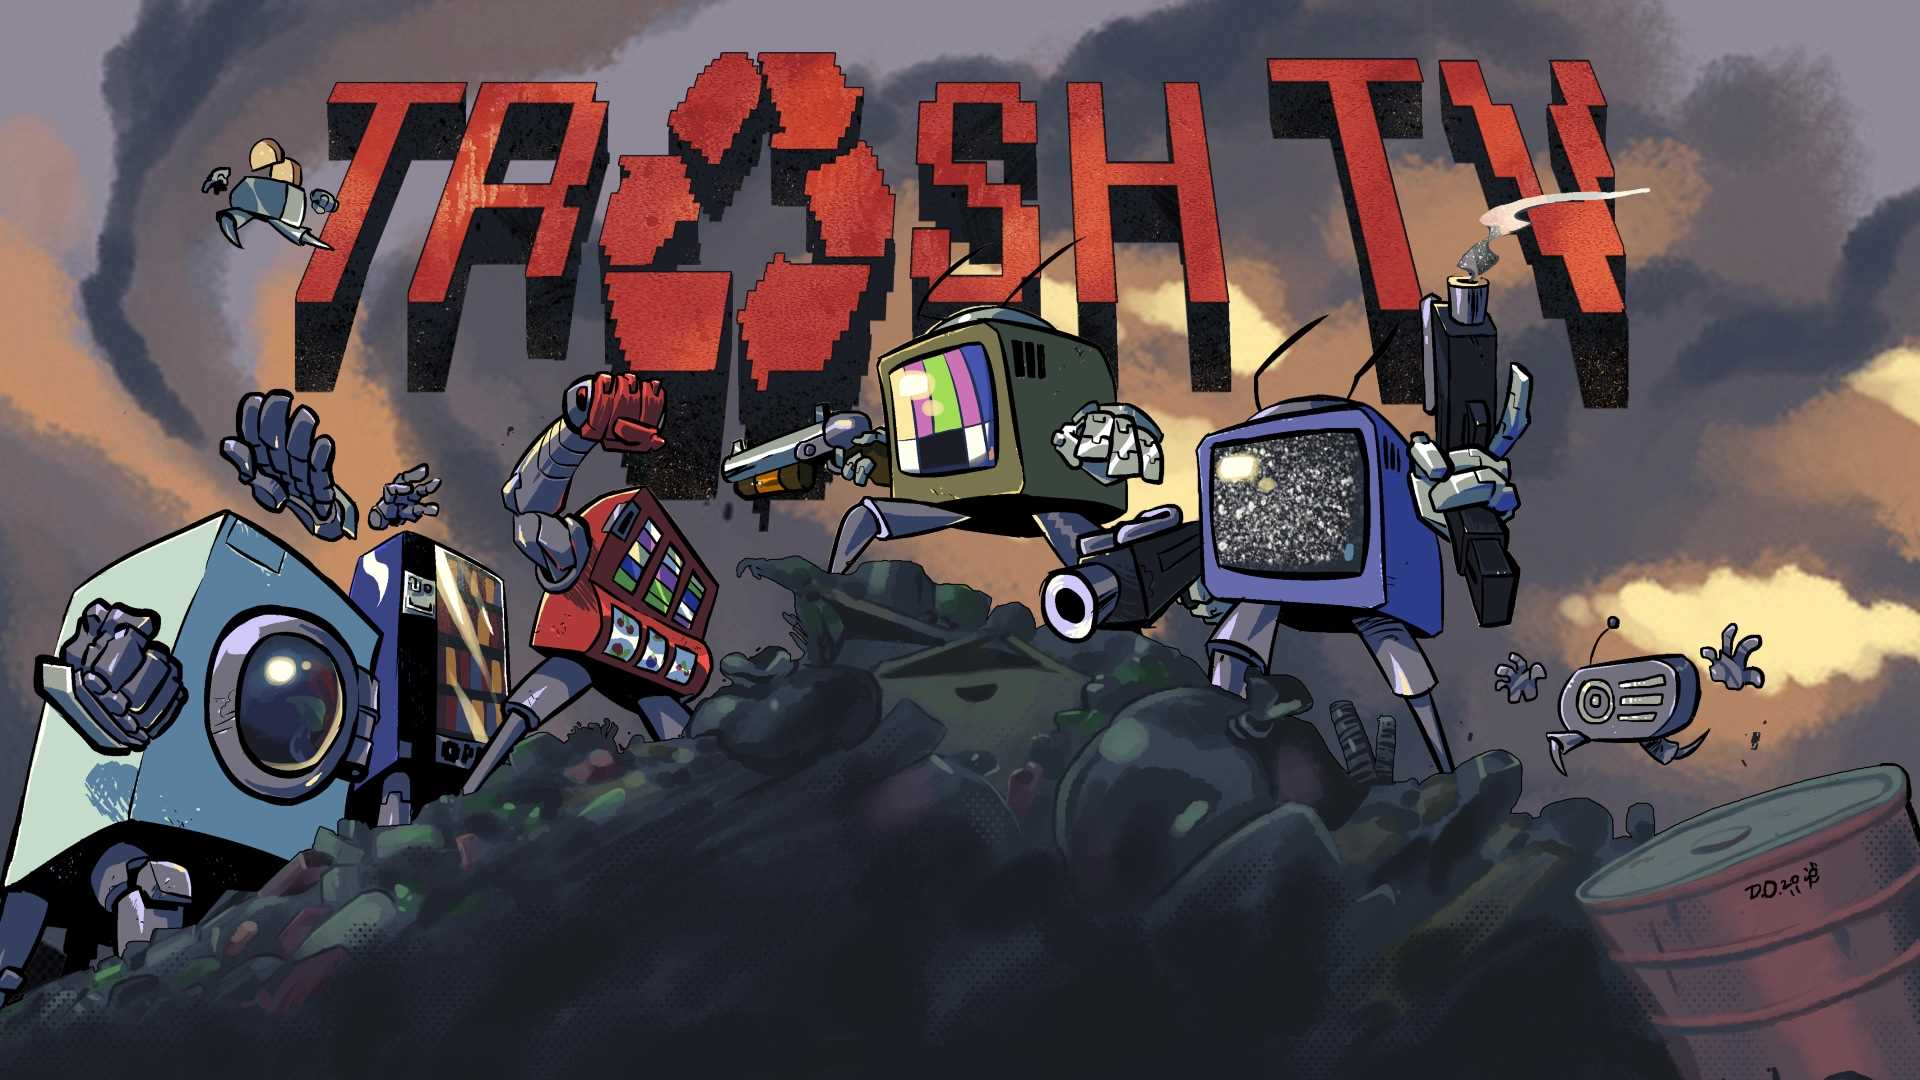 Trash TV (STEAM KEY/ Region free)